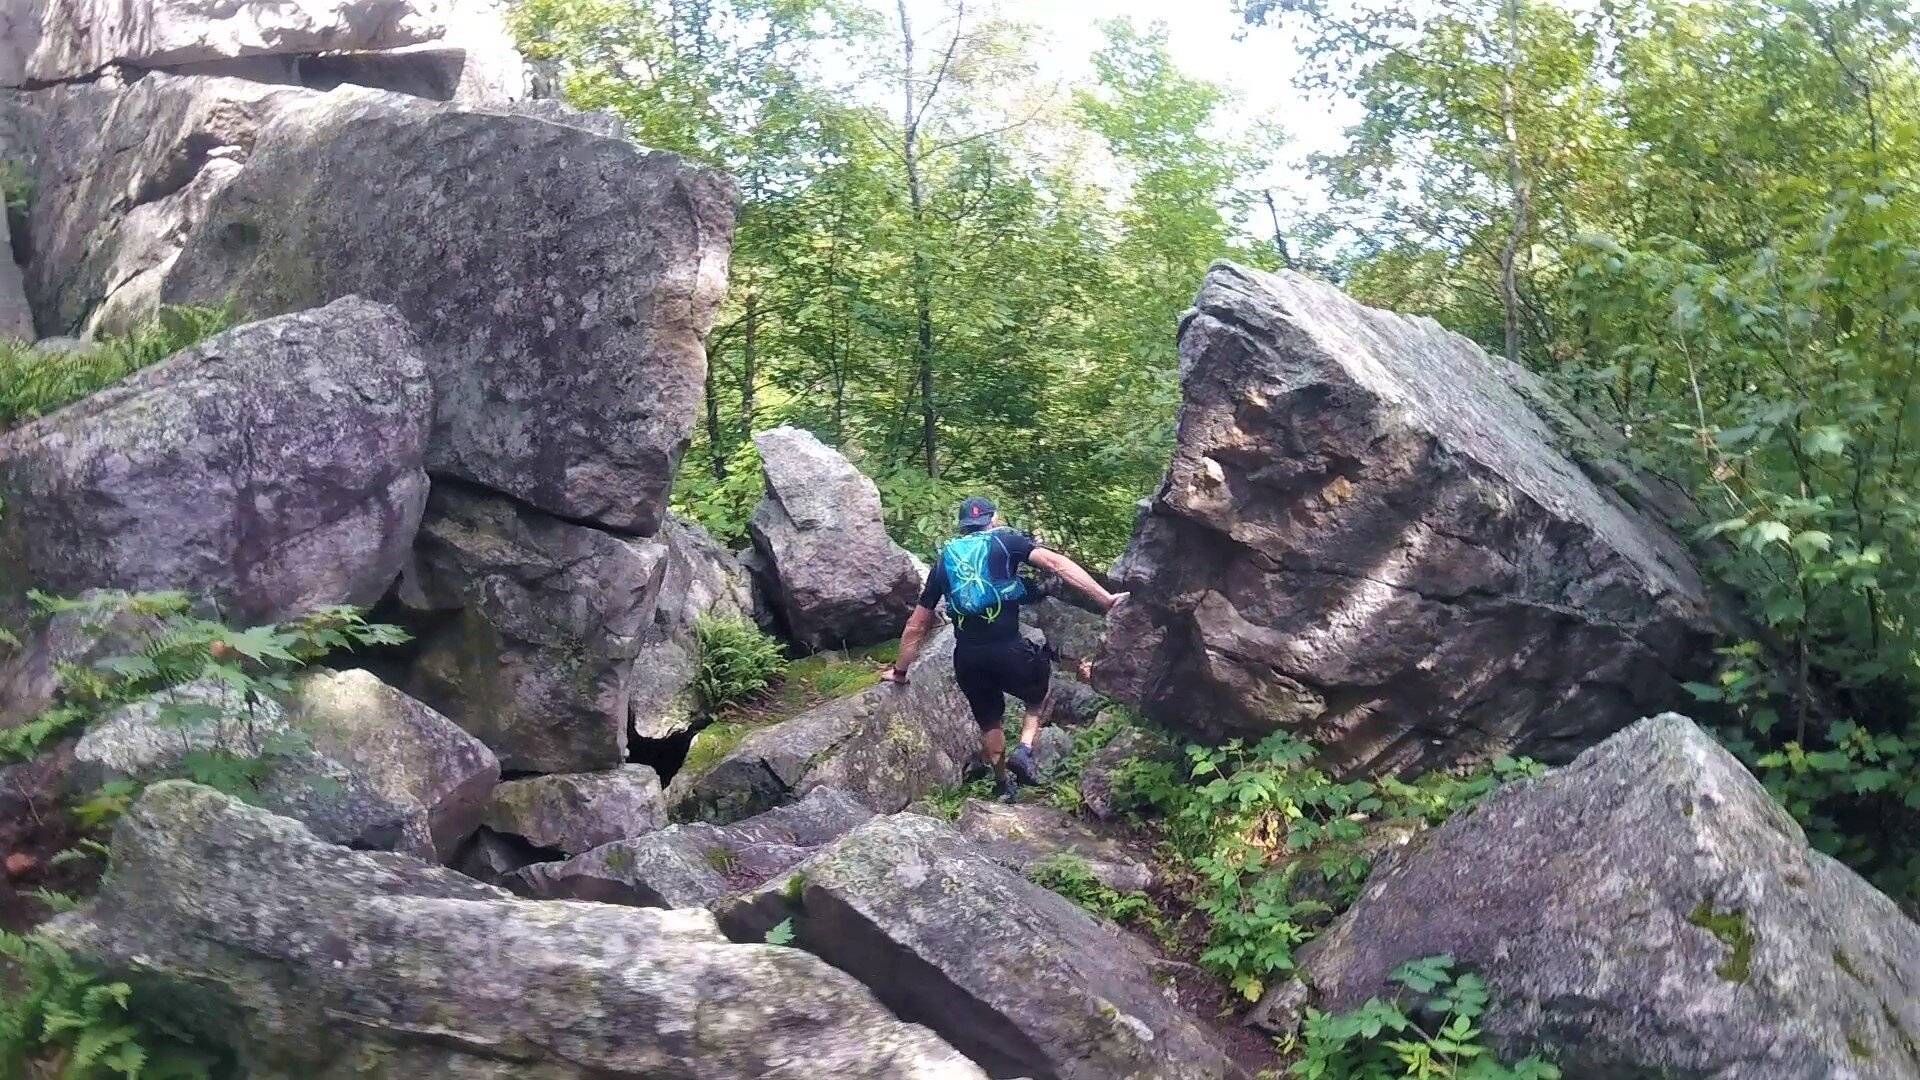 Rib Mountain State Park offers challenging terrain that will allow racers to experience racing differently than the road.